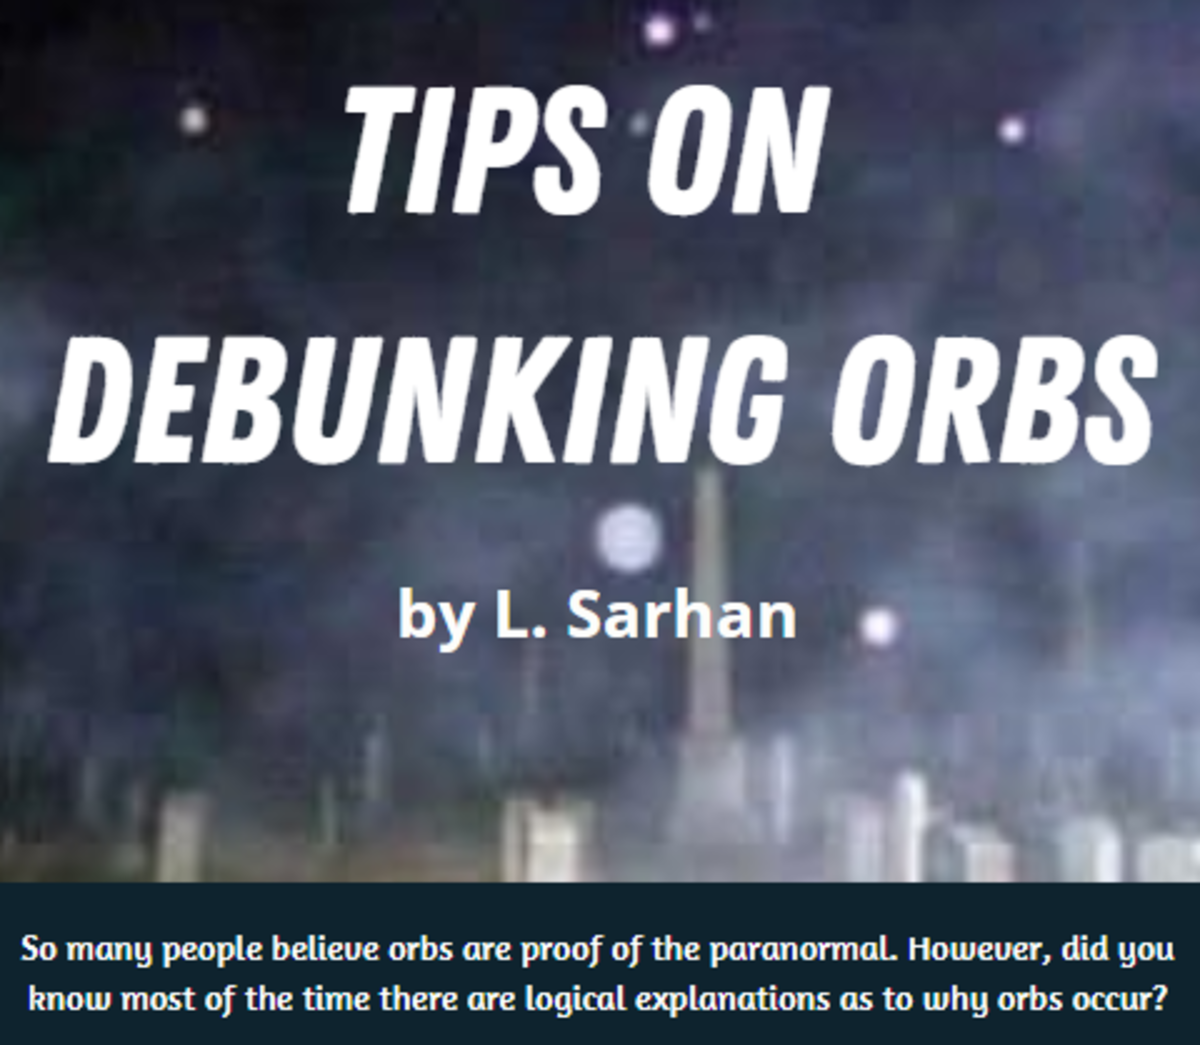 Tips on Debunking Orbs